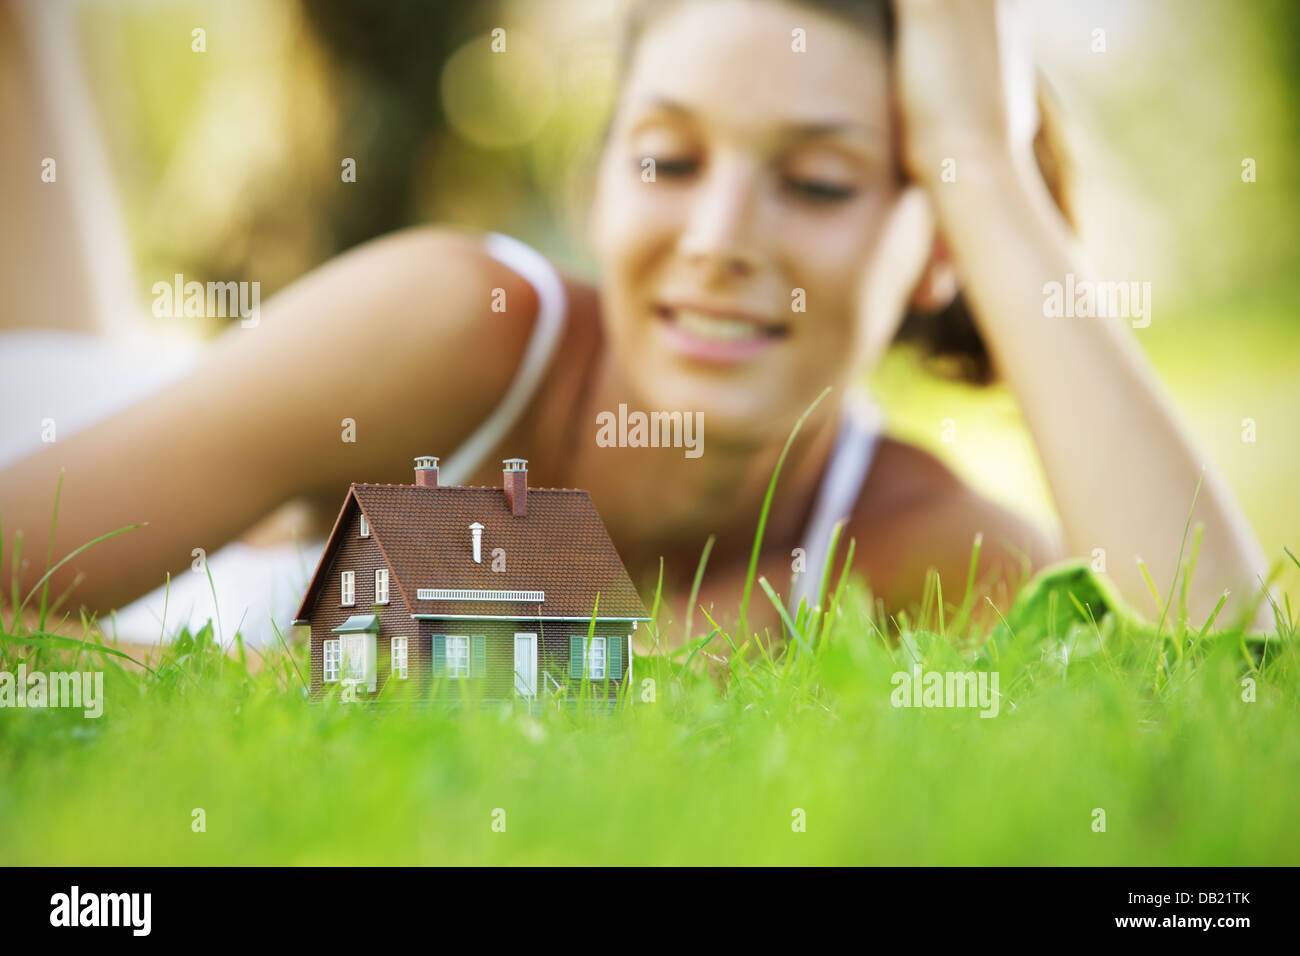 New house - Stock Image